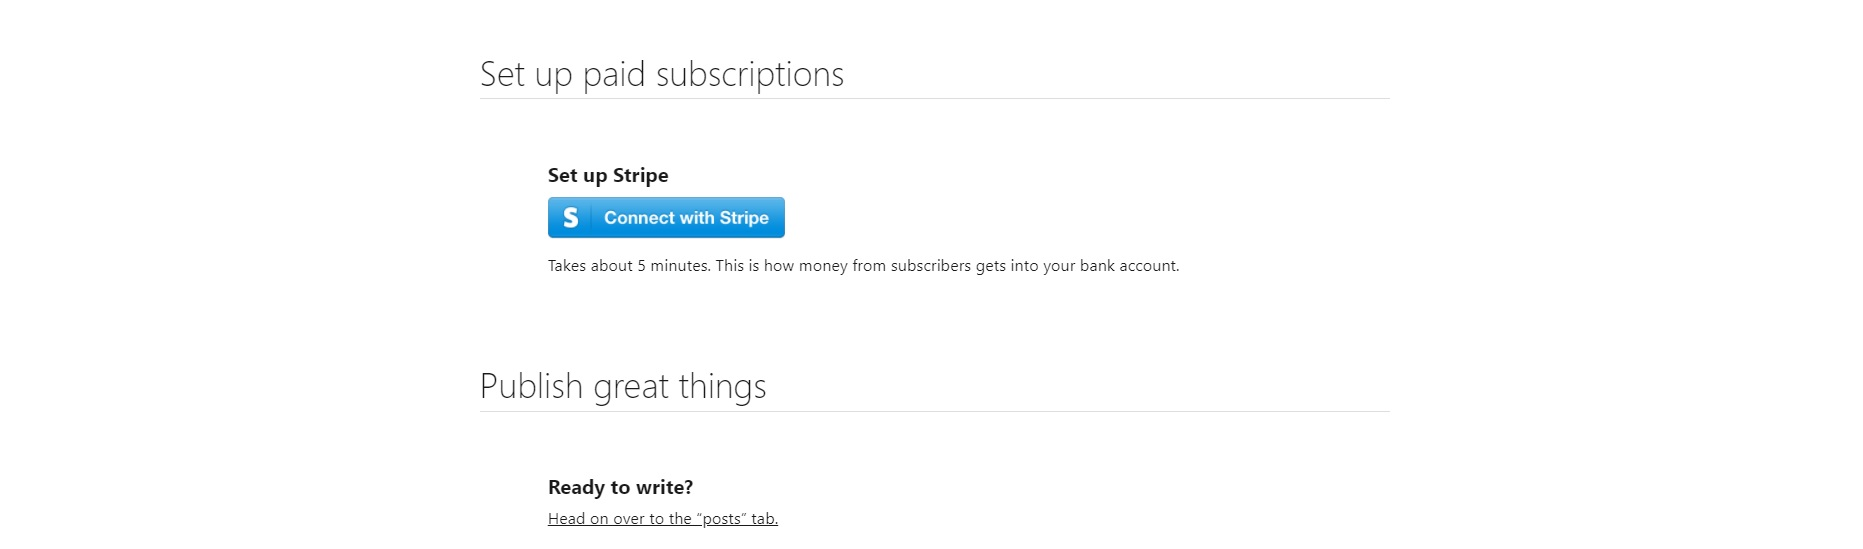 Substack Review subscriptions